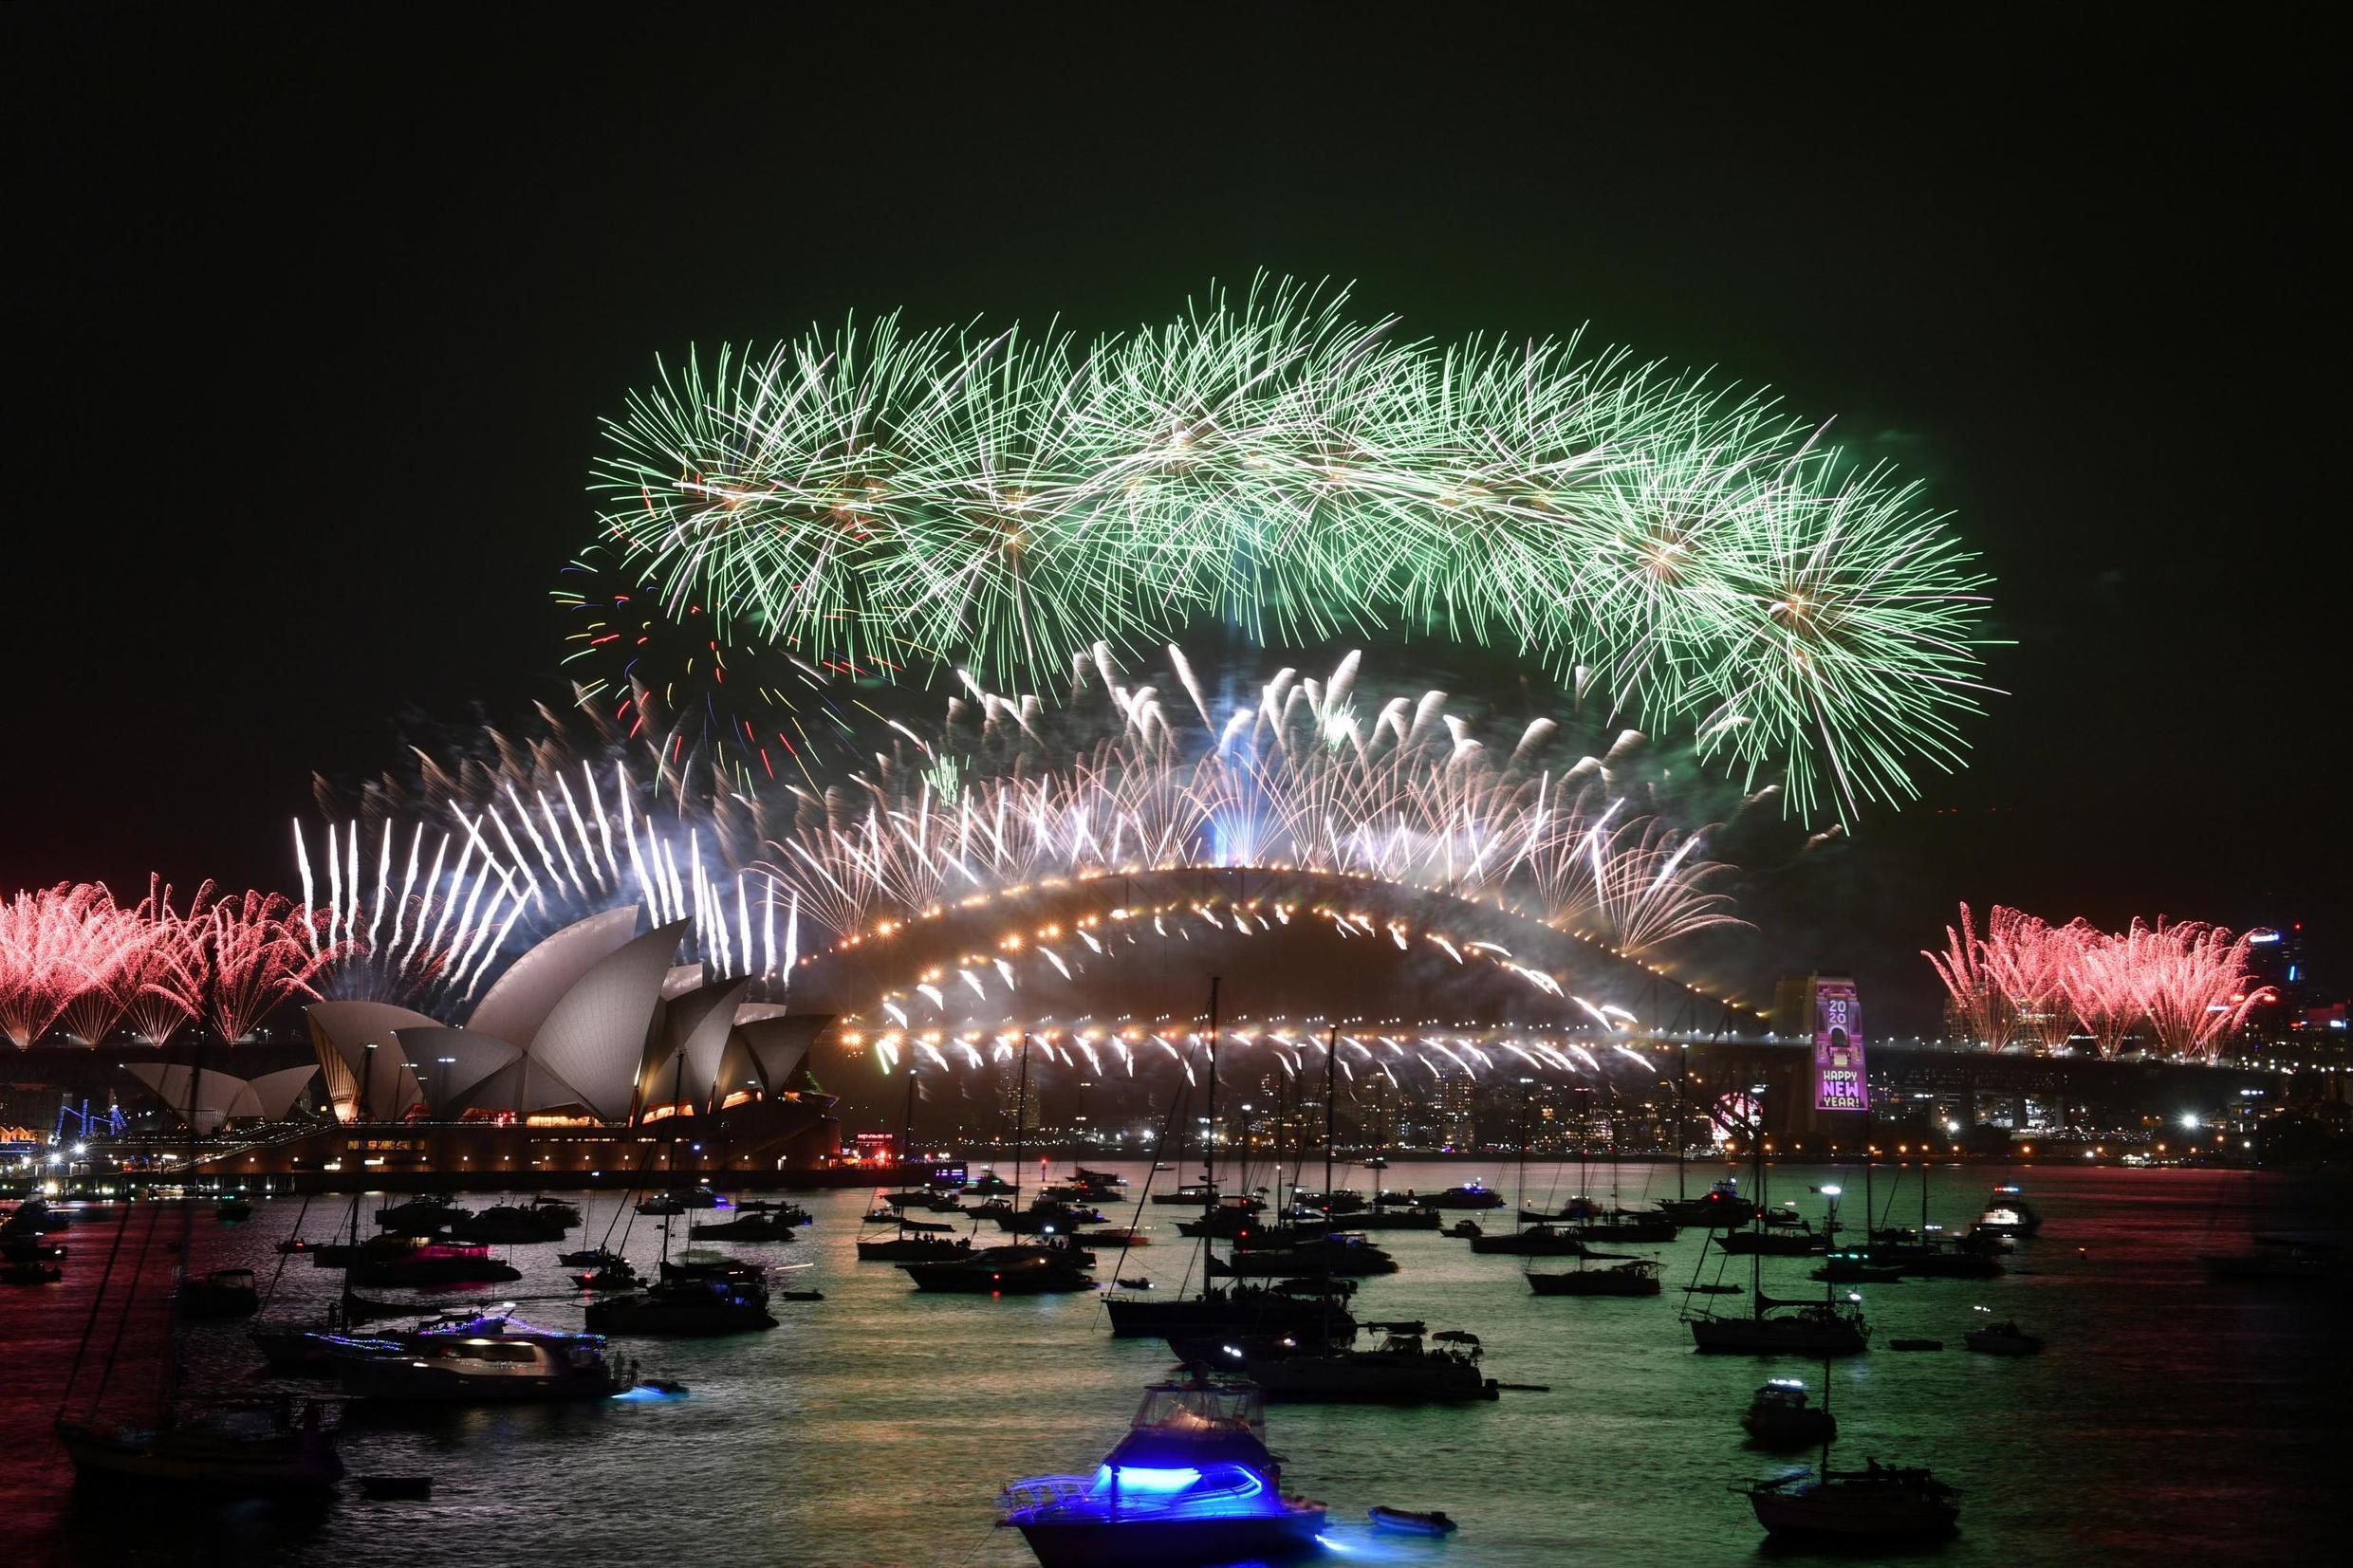 The midnight fireworks are seen from Mrs Macquarie's Chair during New Year's Eve celebrations in Sydney